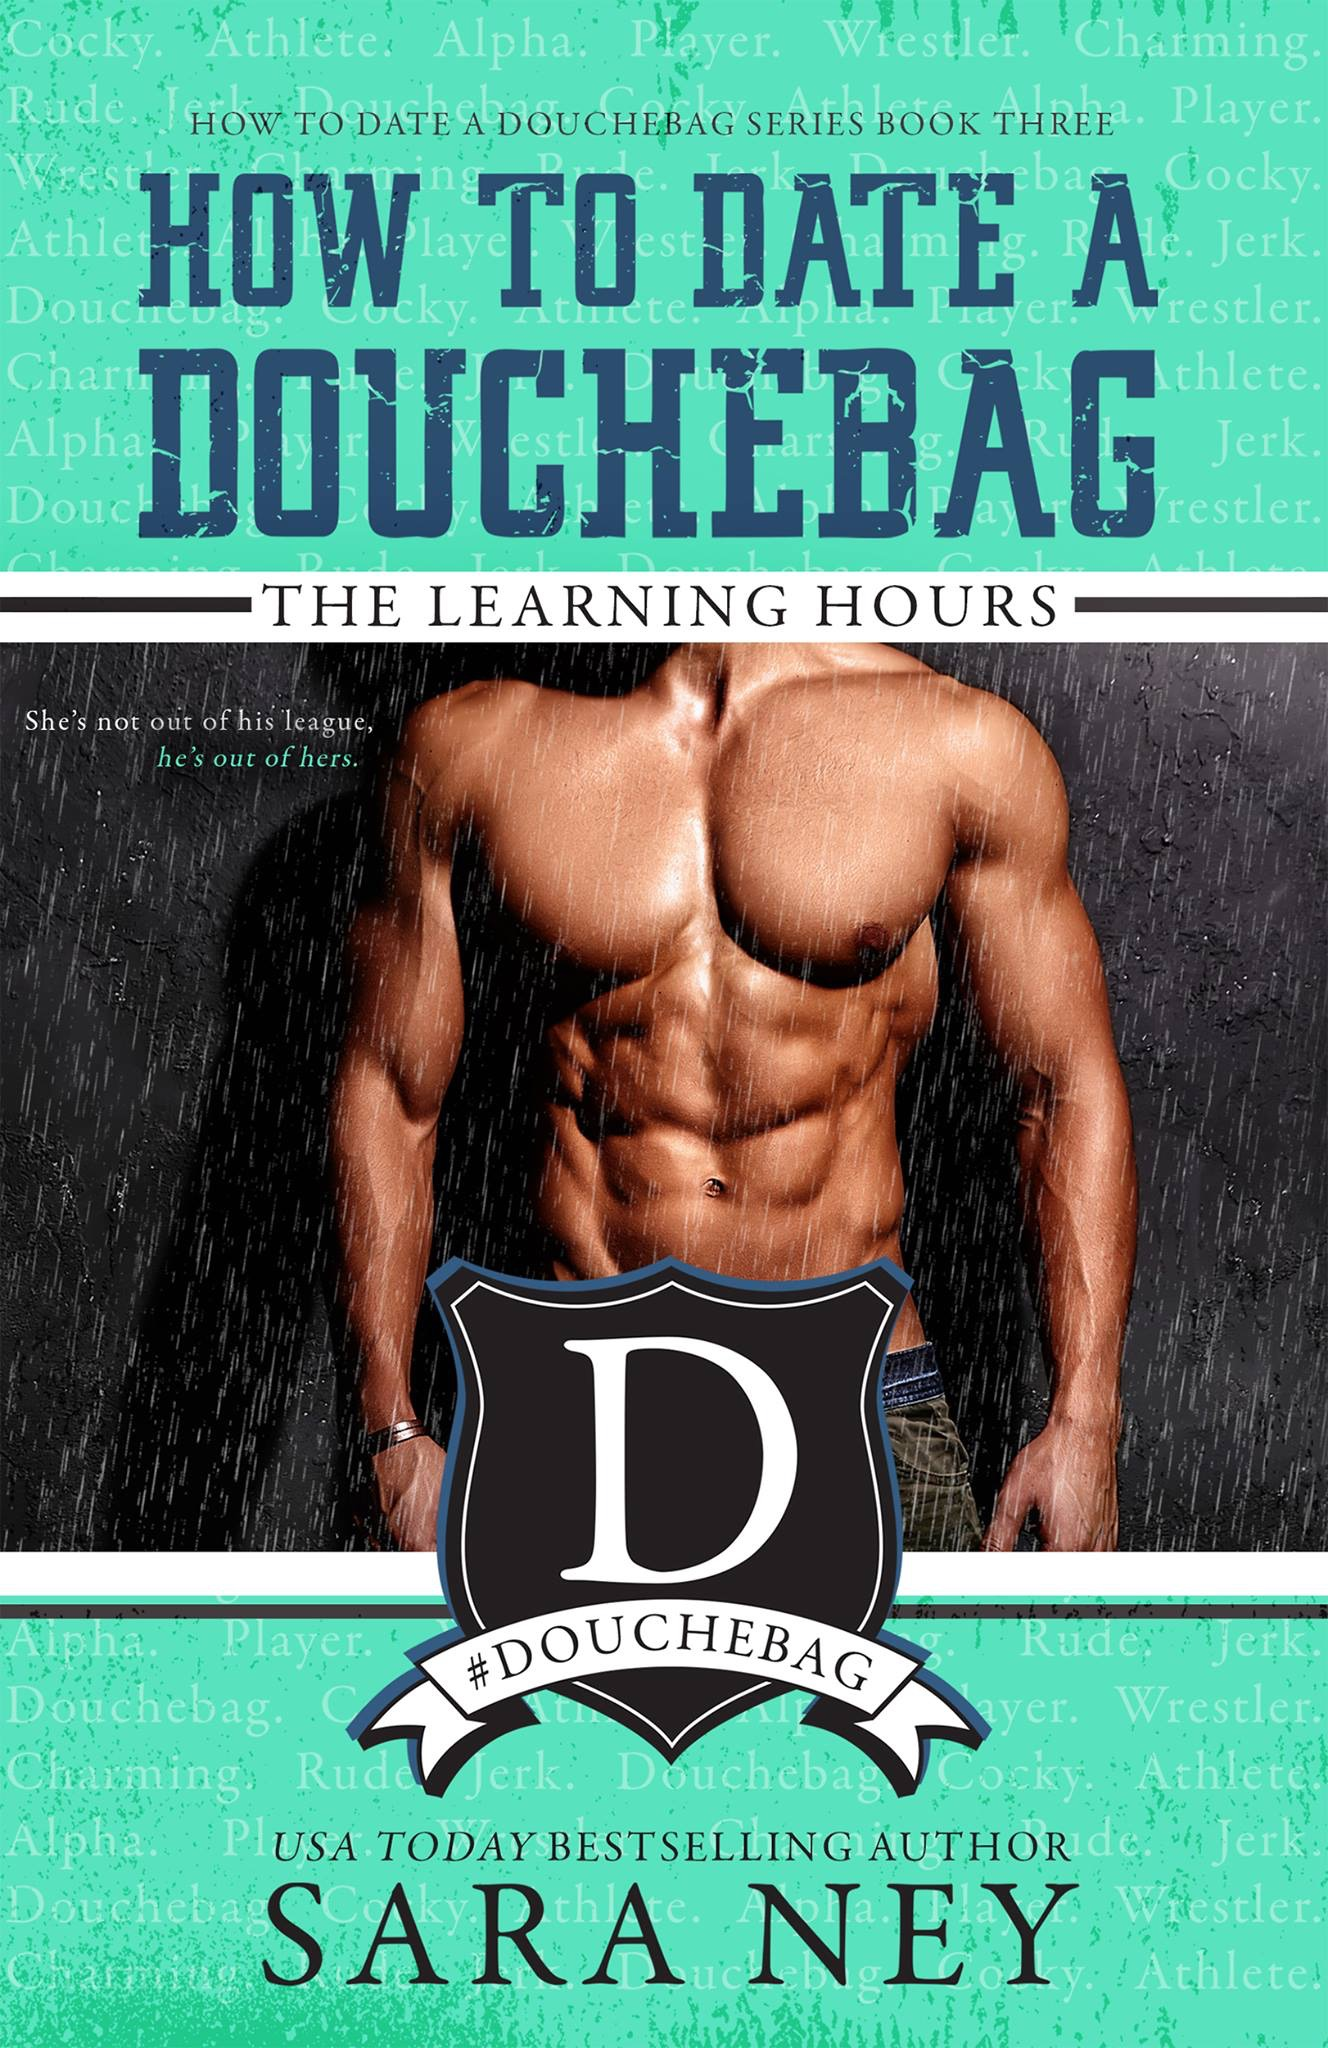 The Learning Hours (How to Date a Douchebag #3) by Sara Ney